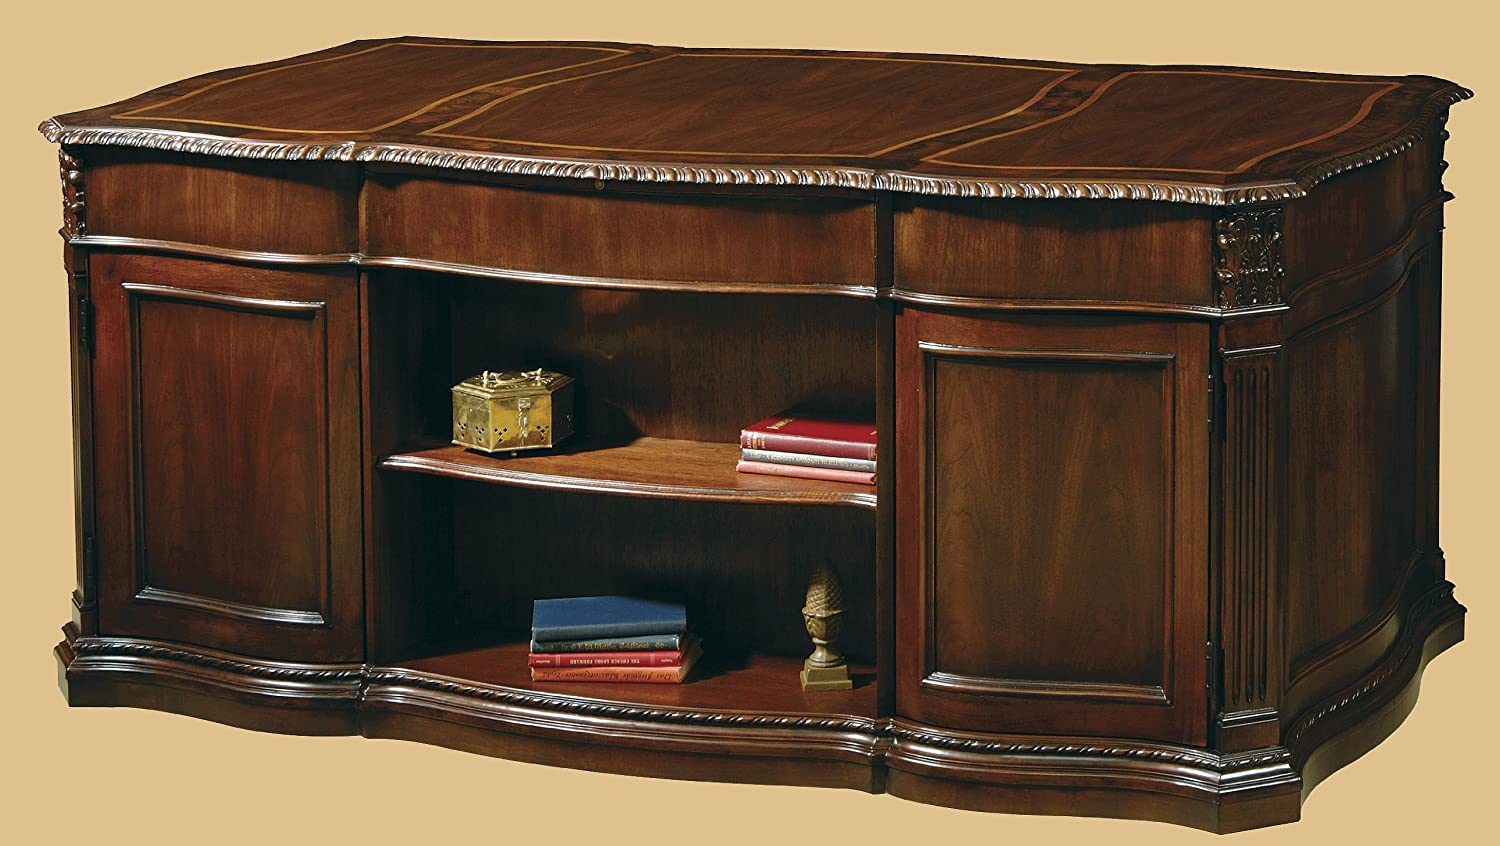 blonde used w hekman furniture product desk category leather end tooled executive categories top high